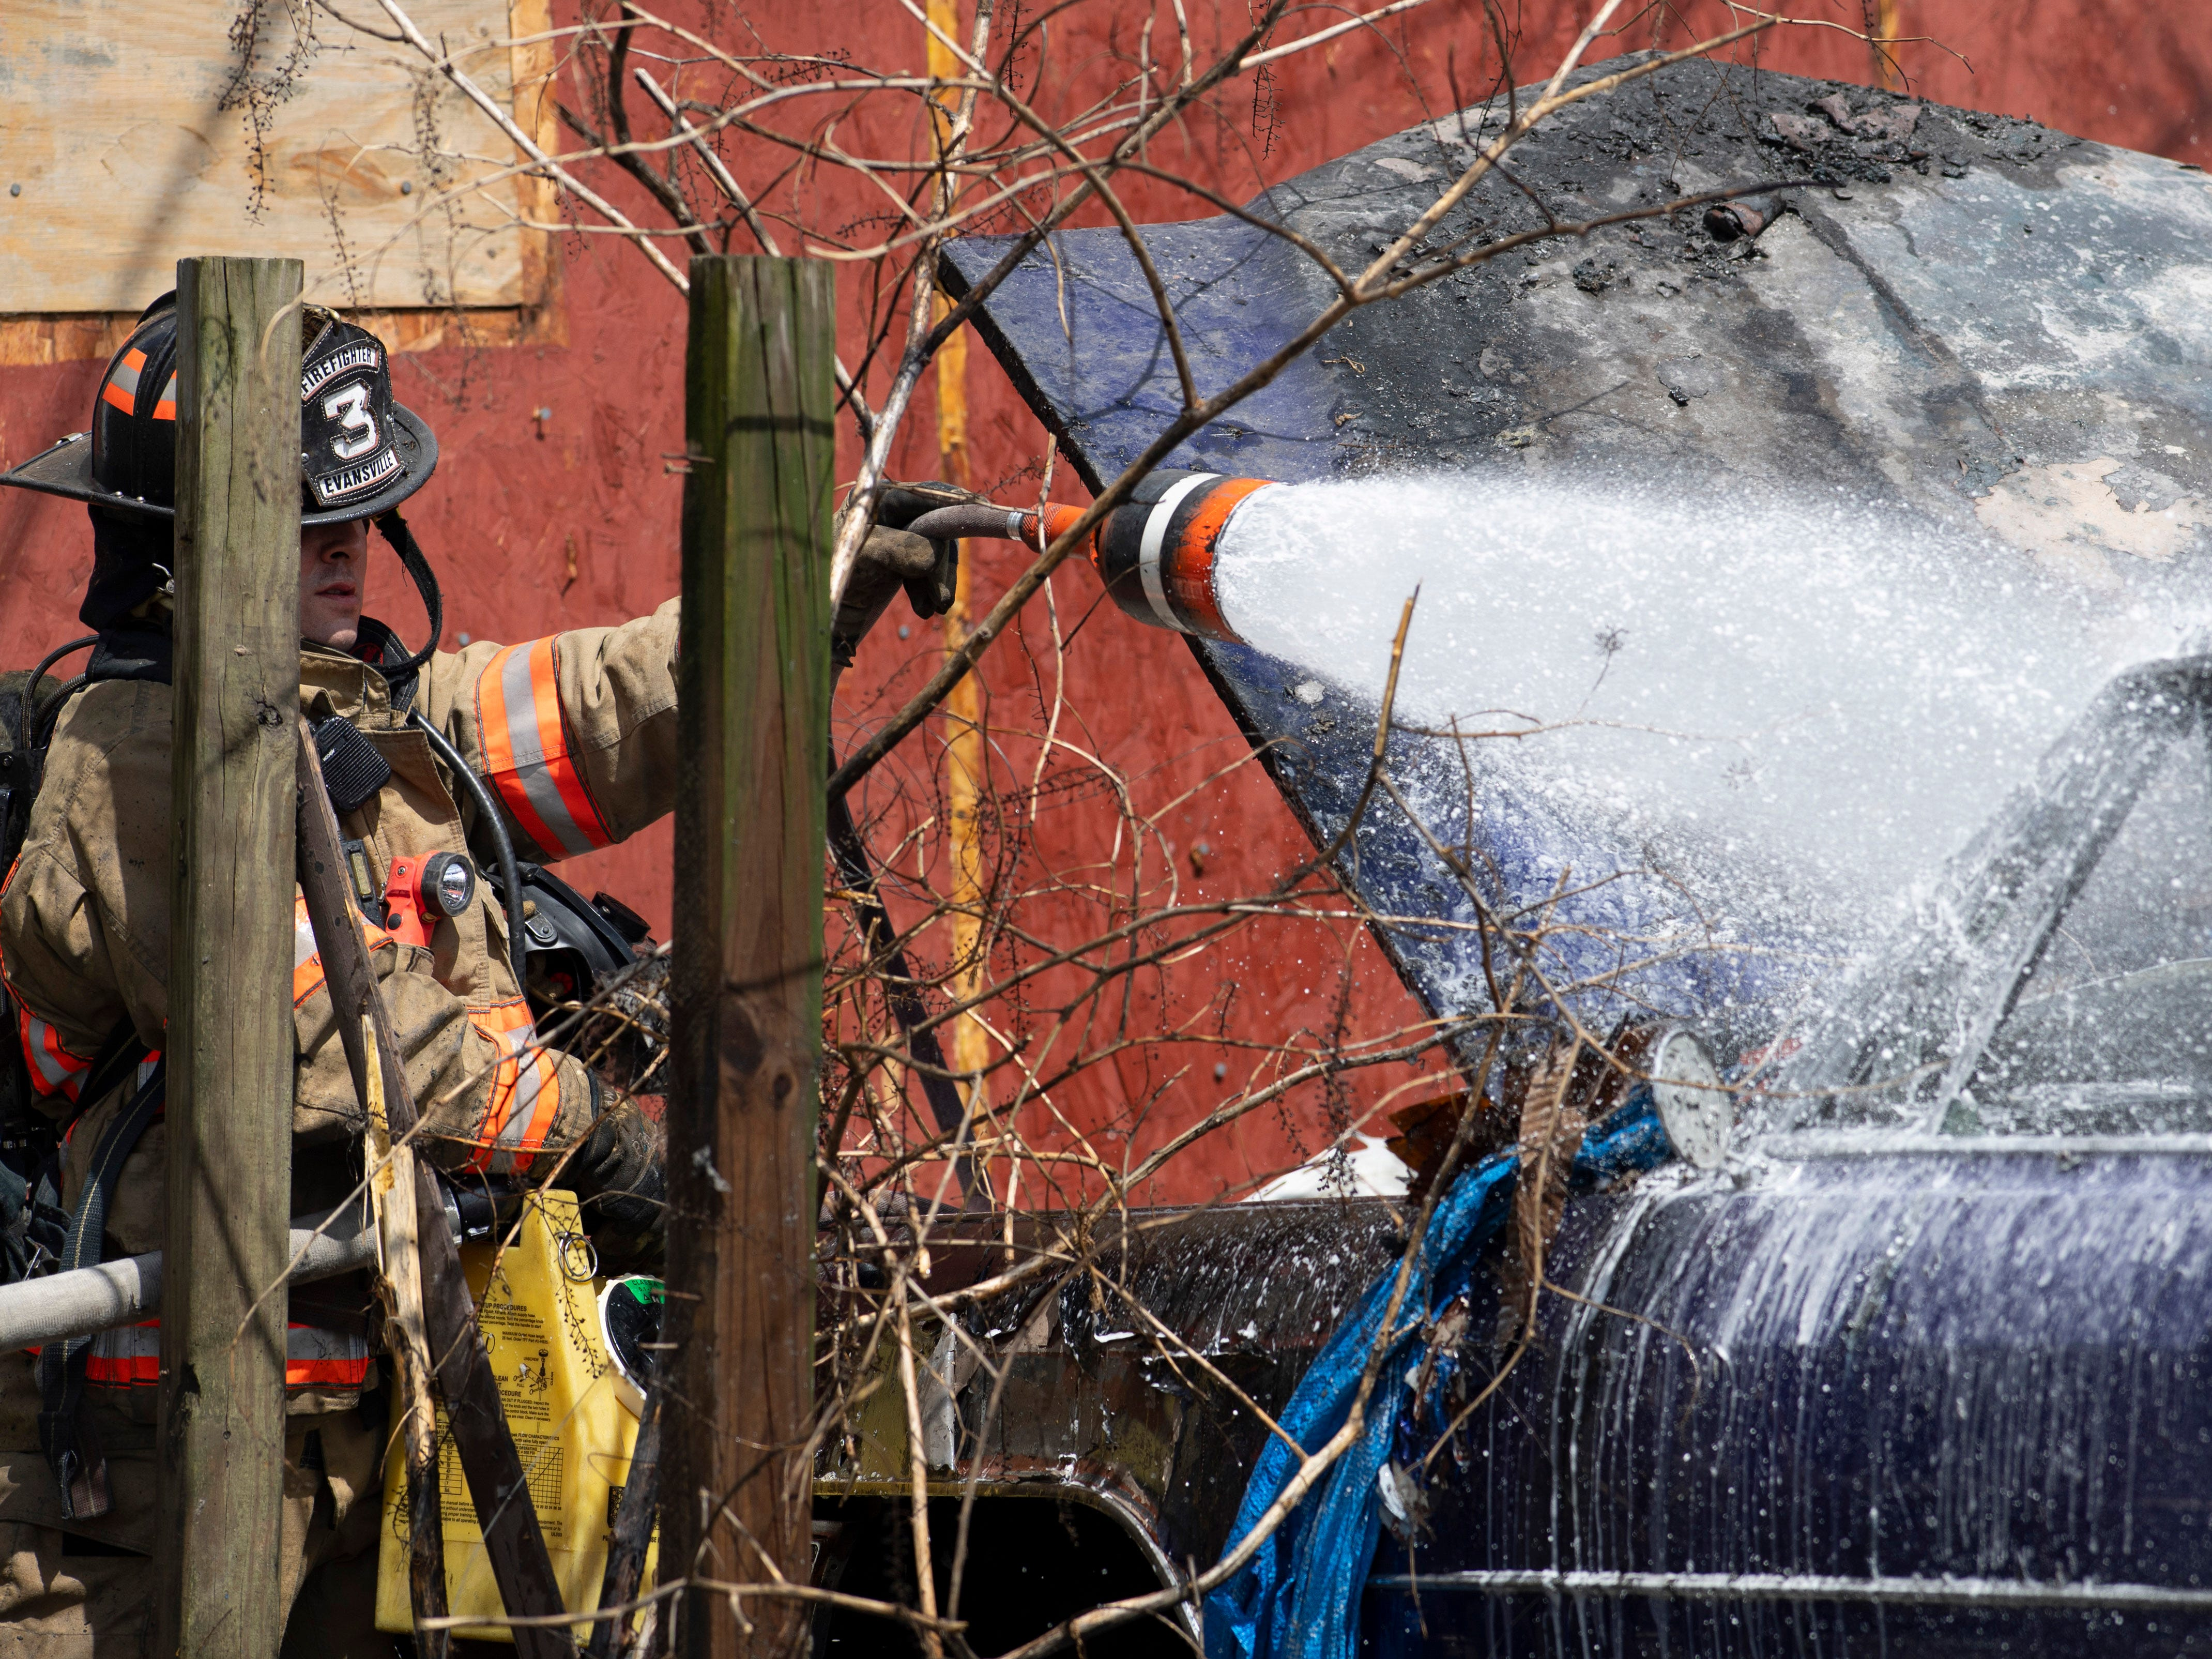 Firefighter Dominic Turi with Fire Station 3 puts foam on the remains of a 1963 Cadillac behind a home at 1904 Indiana Street Monday afternoon. The siding of the rear of the home was torn off to make sure the fire hadn't crept into the house. Evansville Fire Department believes the blaze started as a trash fire. Nobody was injured in the fire.